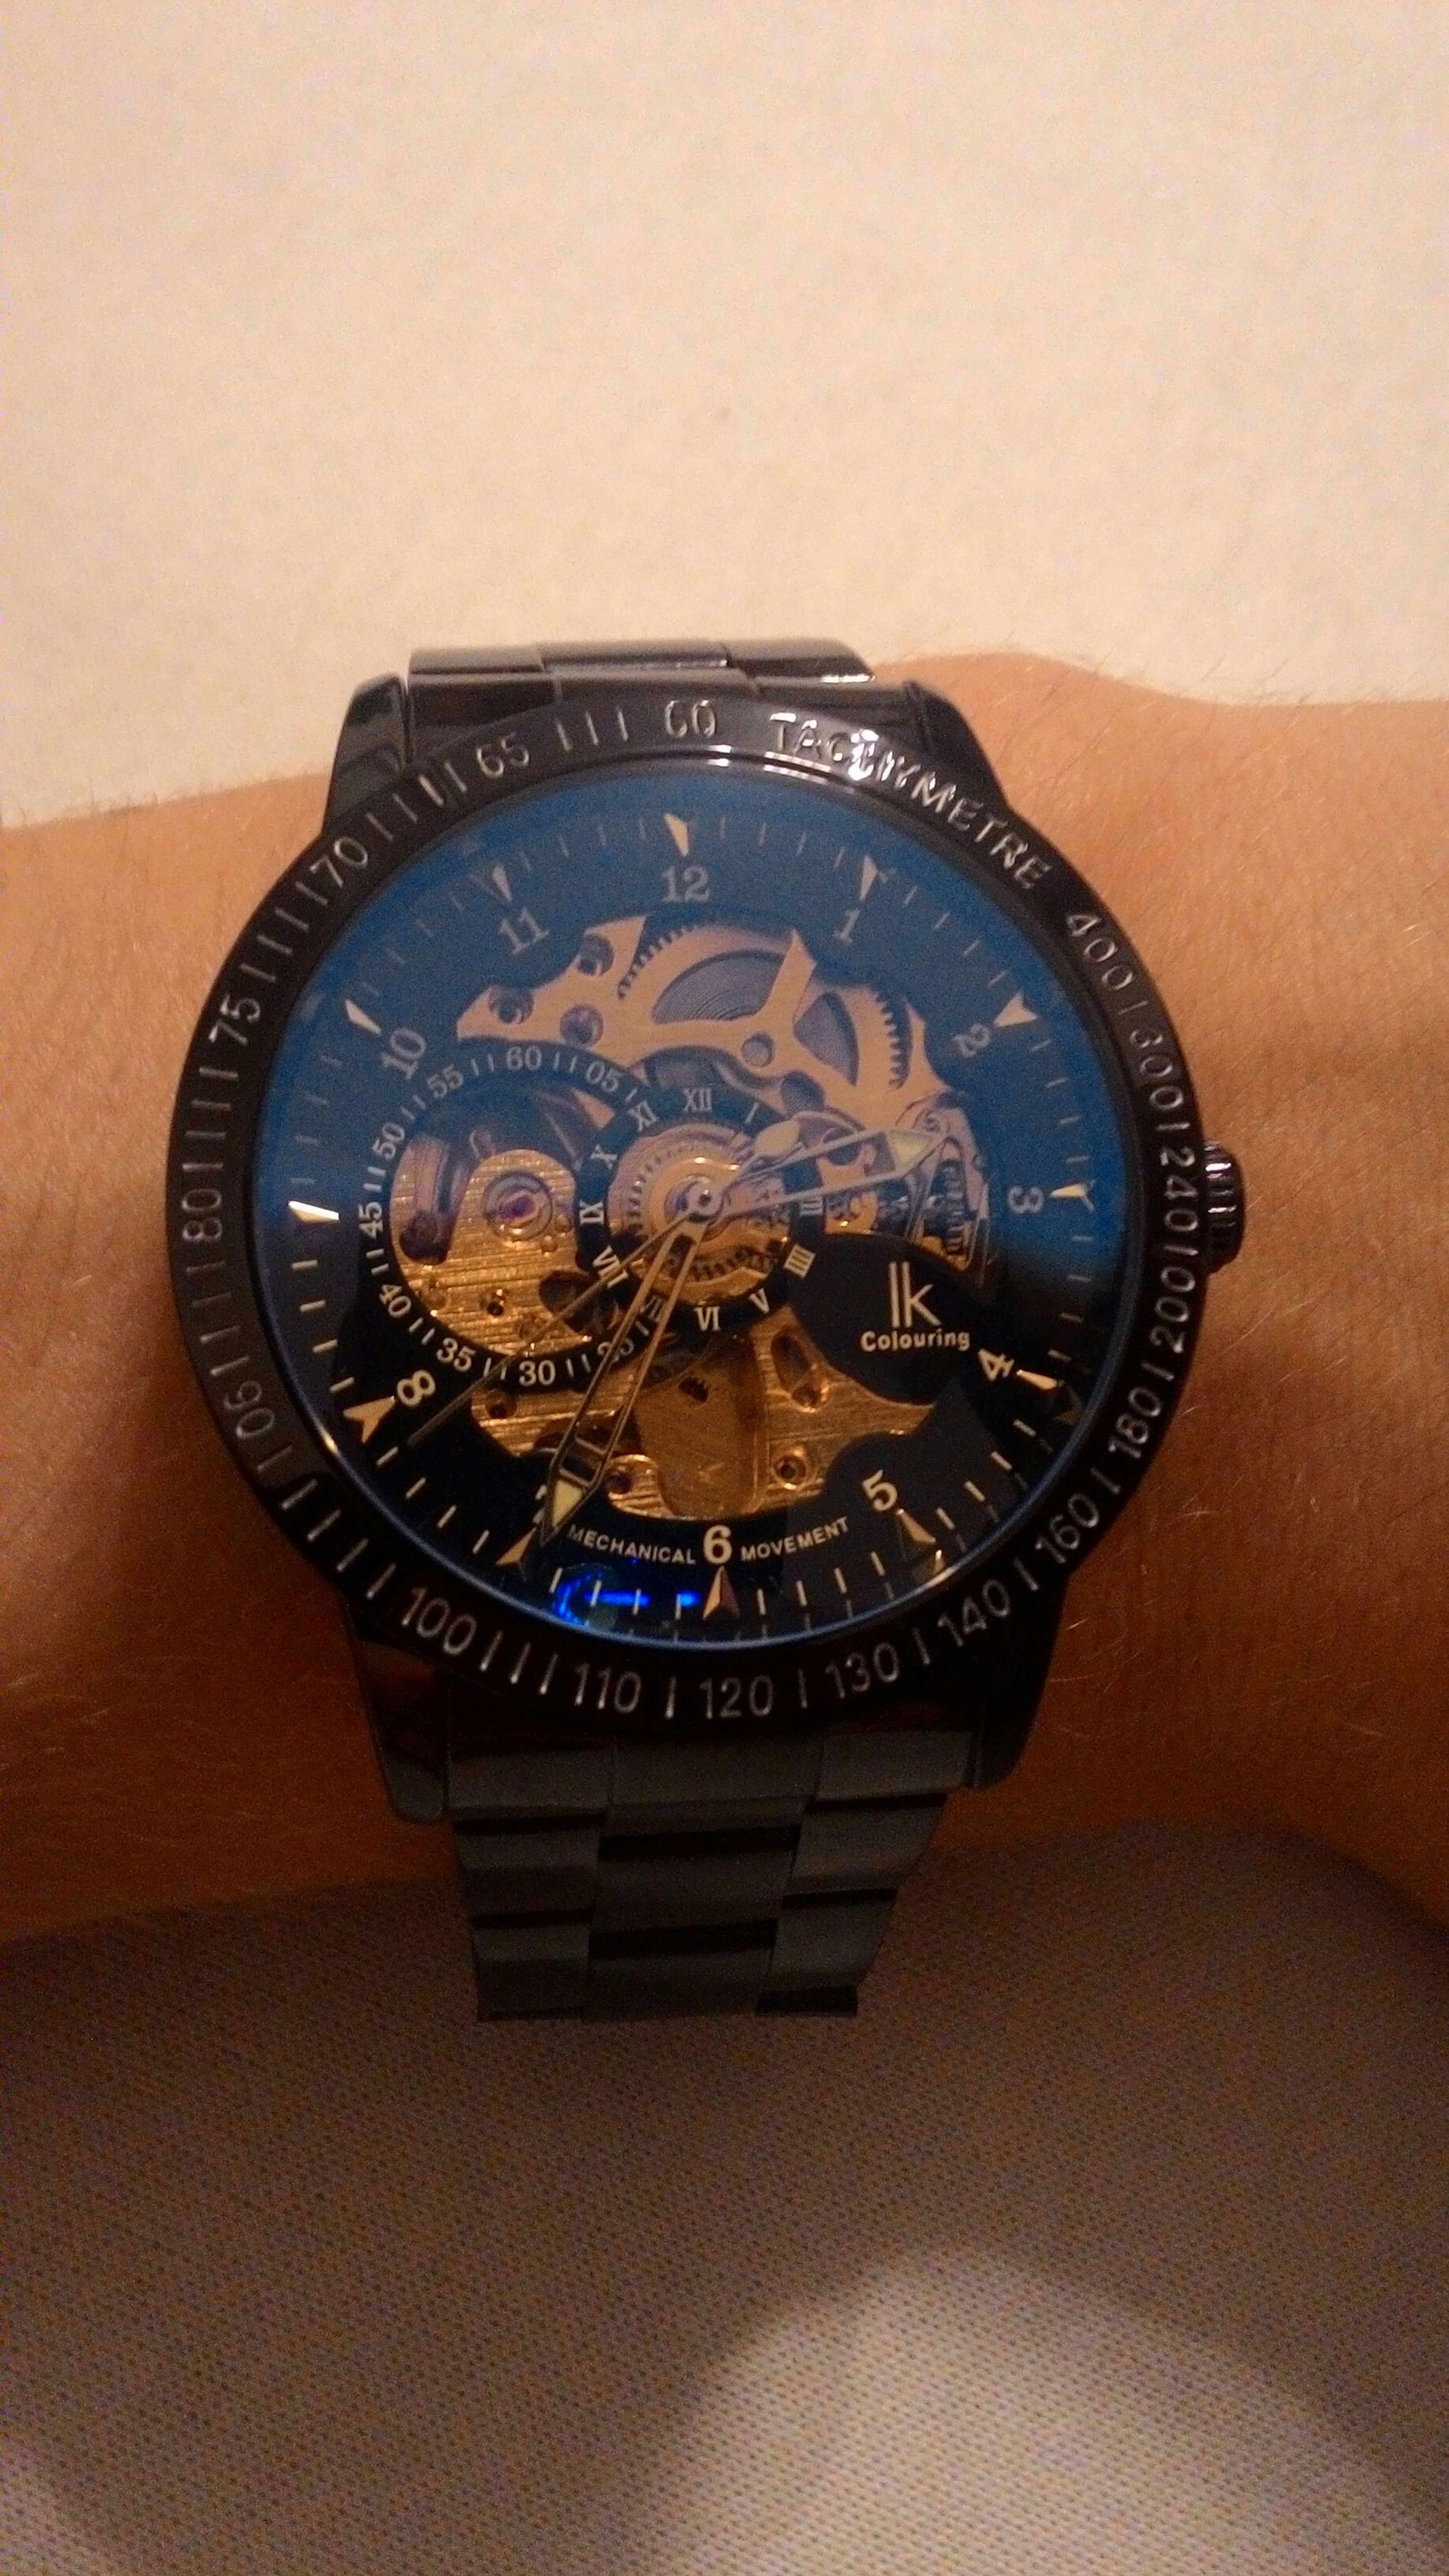 New Watch Blue Black Golden Time Chilling The Purist (no Edit, No Filter) Taking Photos Nice Looking Clean Blue Glass Mechanical Watch Automatic Watch Alienwork